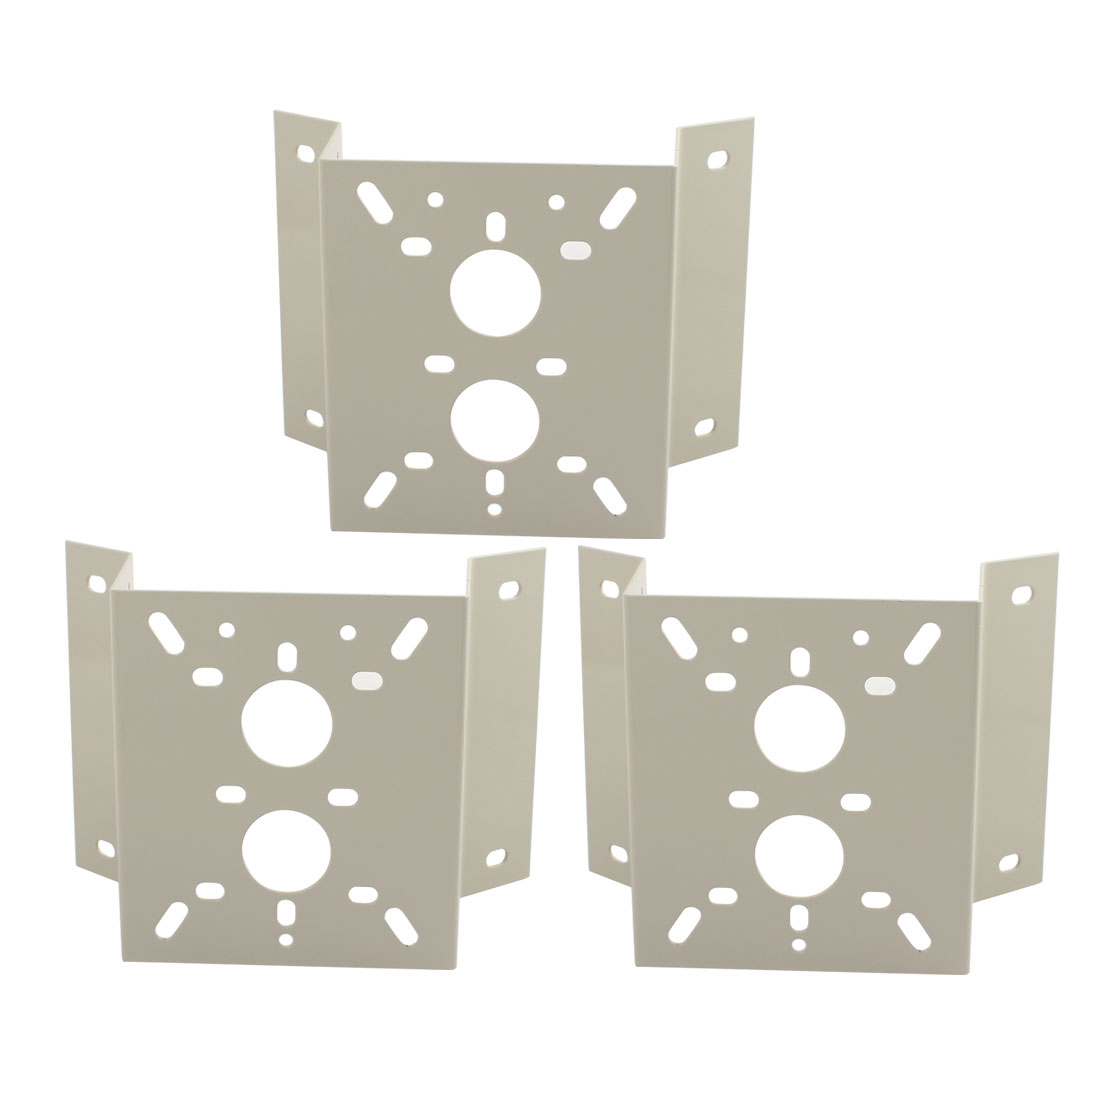 Trapezoid CCTV Security Camera Aluminum Alloy Wall Mount Stand Bracket 3Pcs